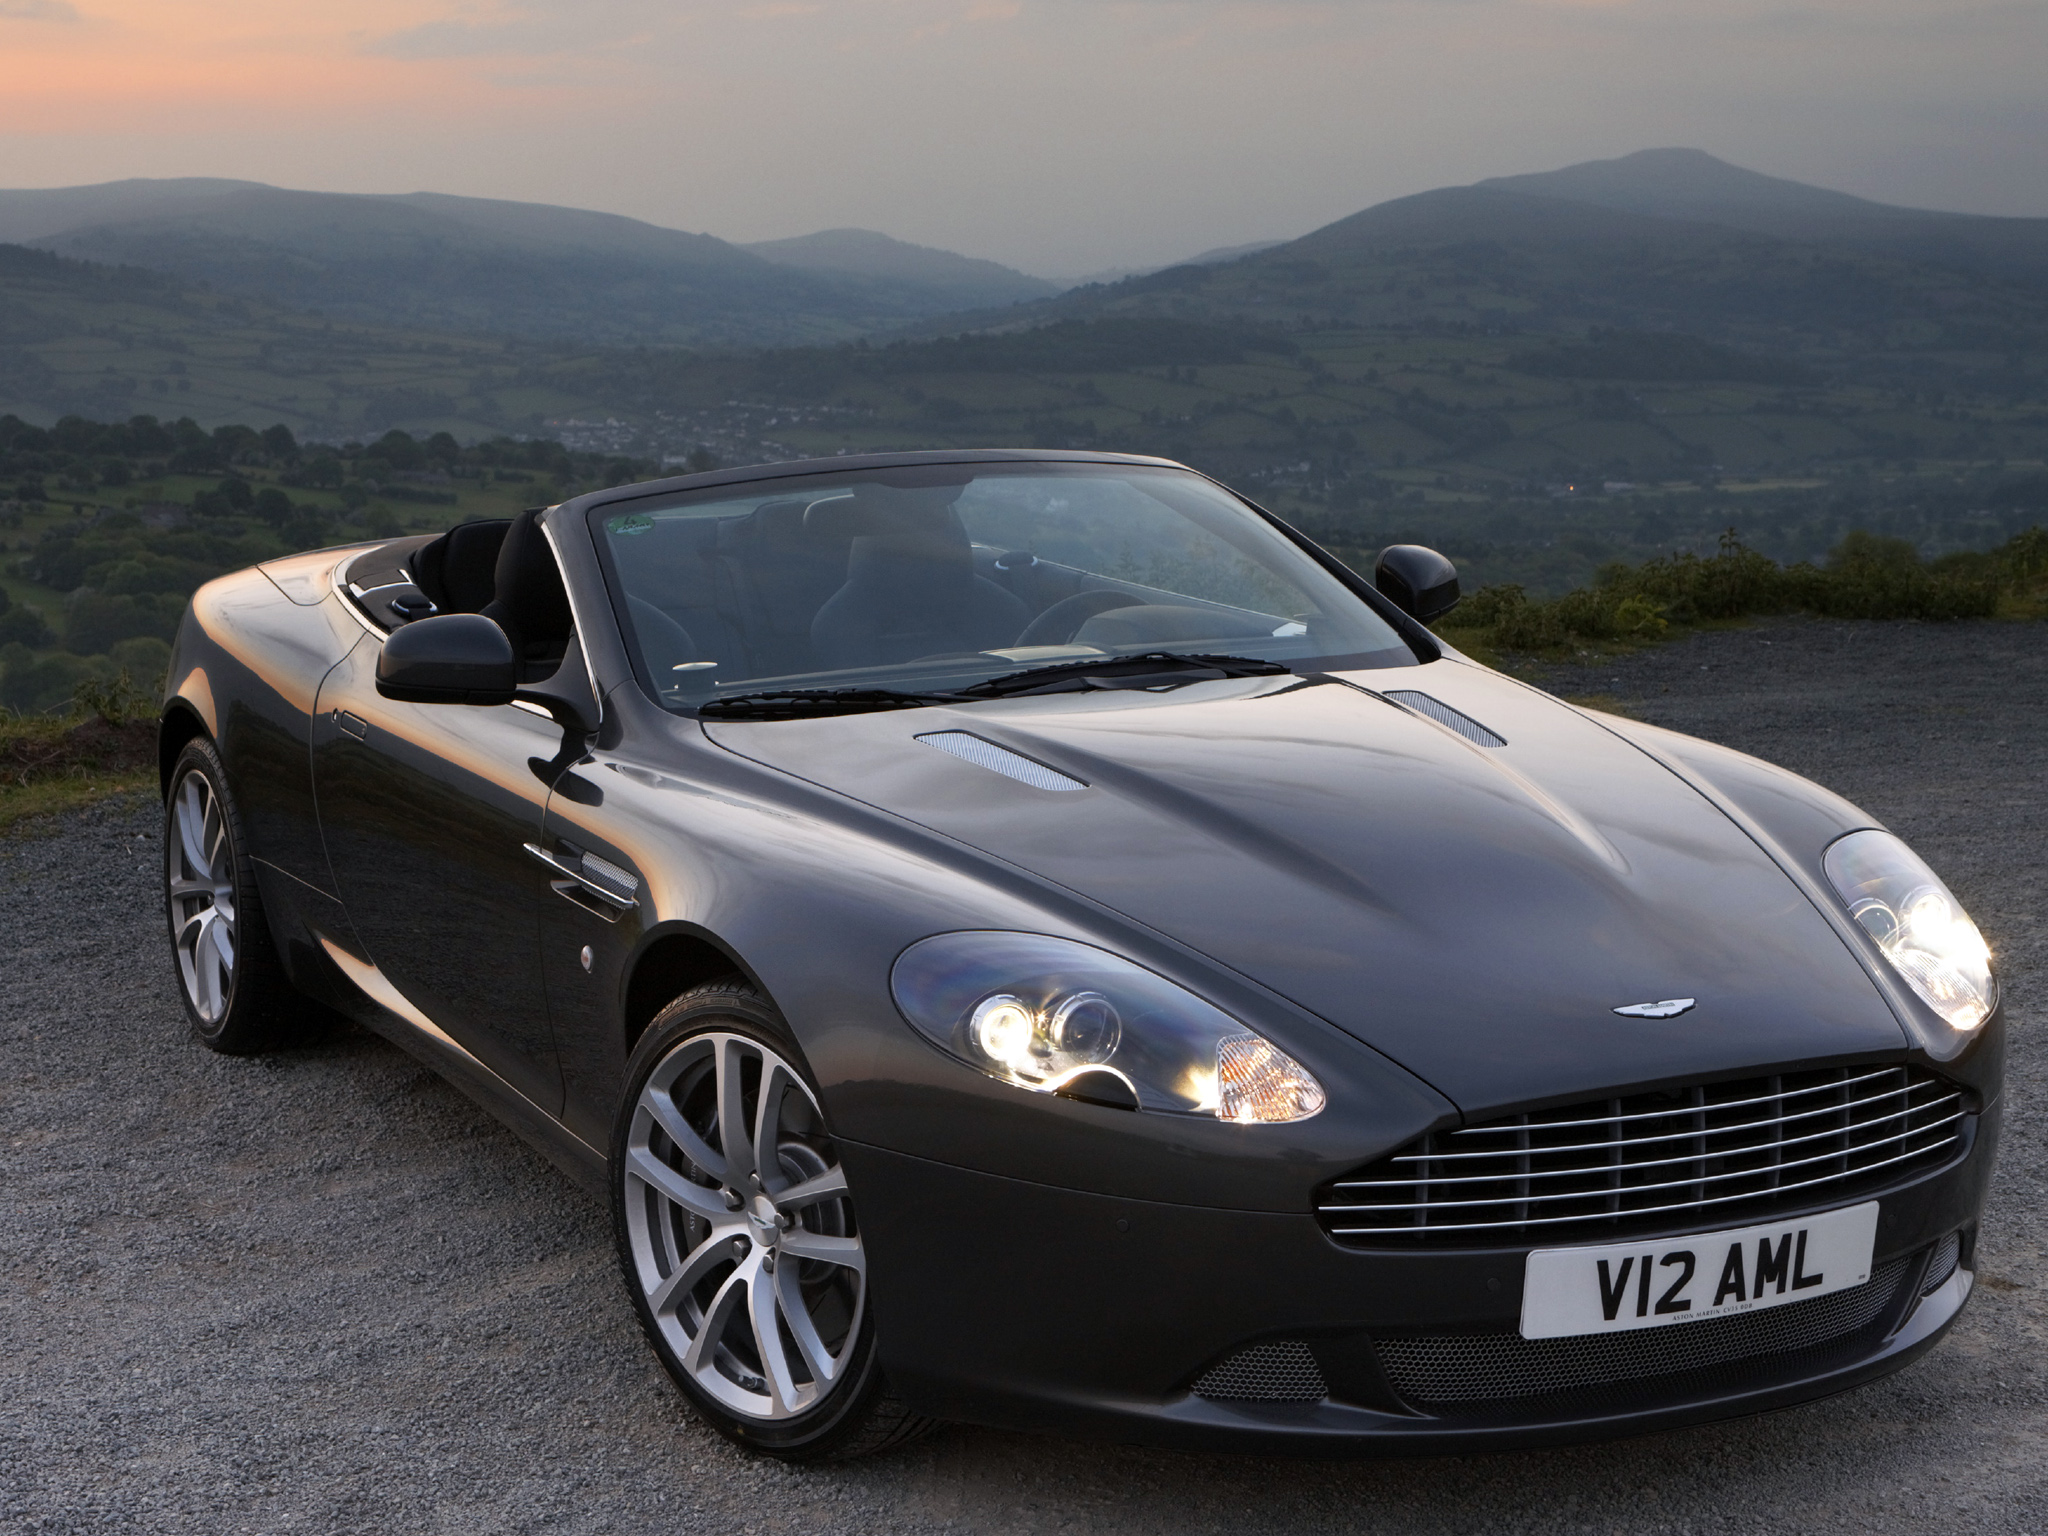 Aston Martin DB9 Volante Wallpapers Car wallpapers HD 2048x1536